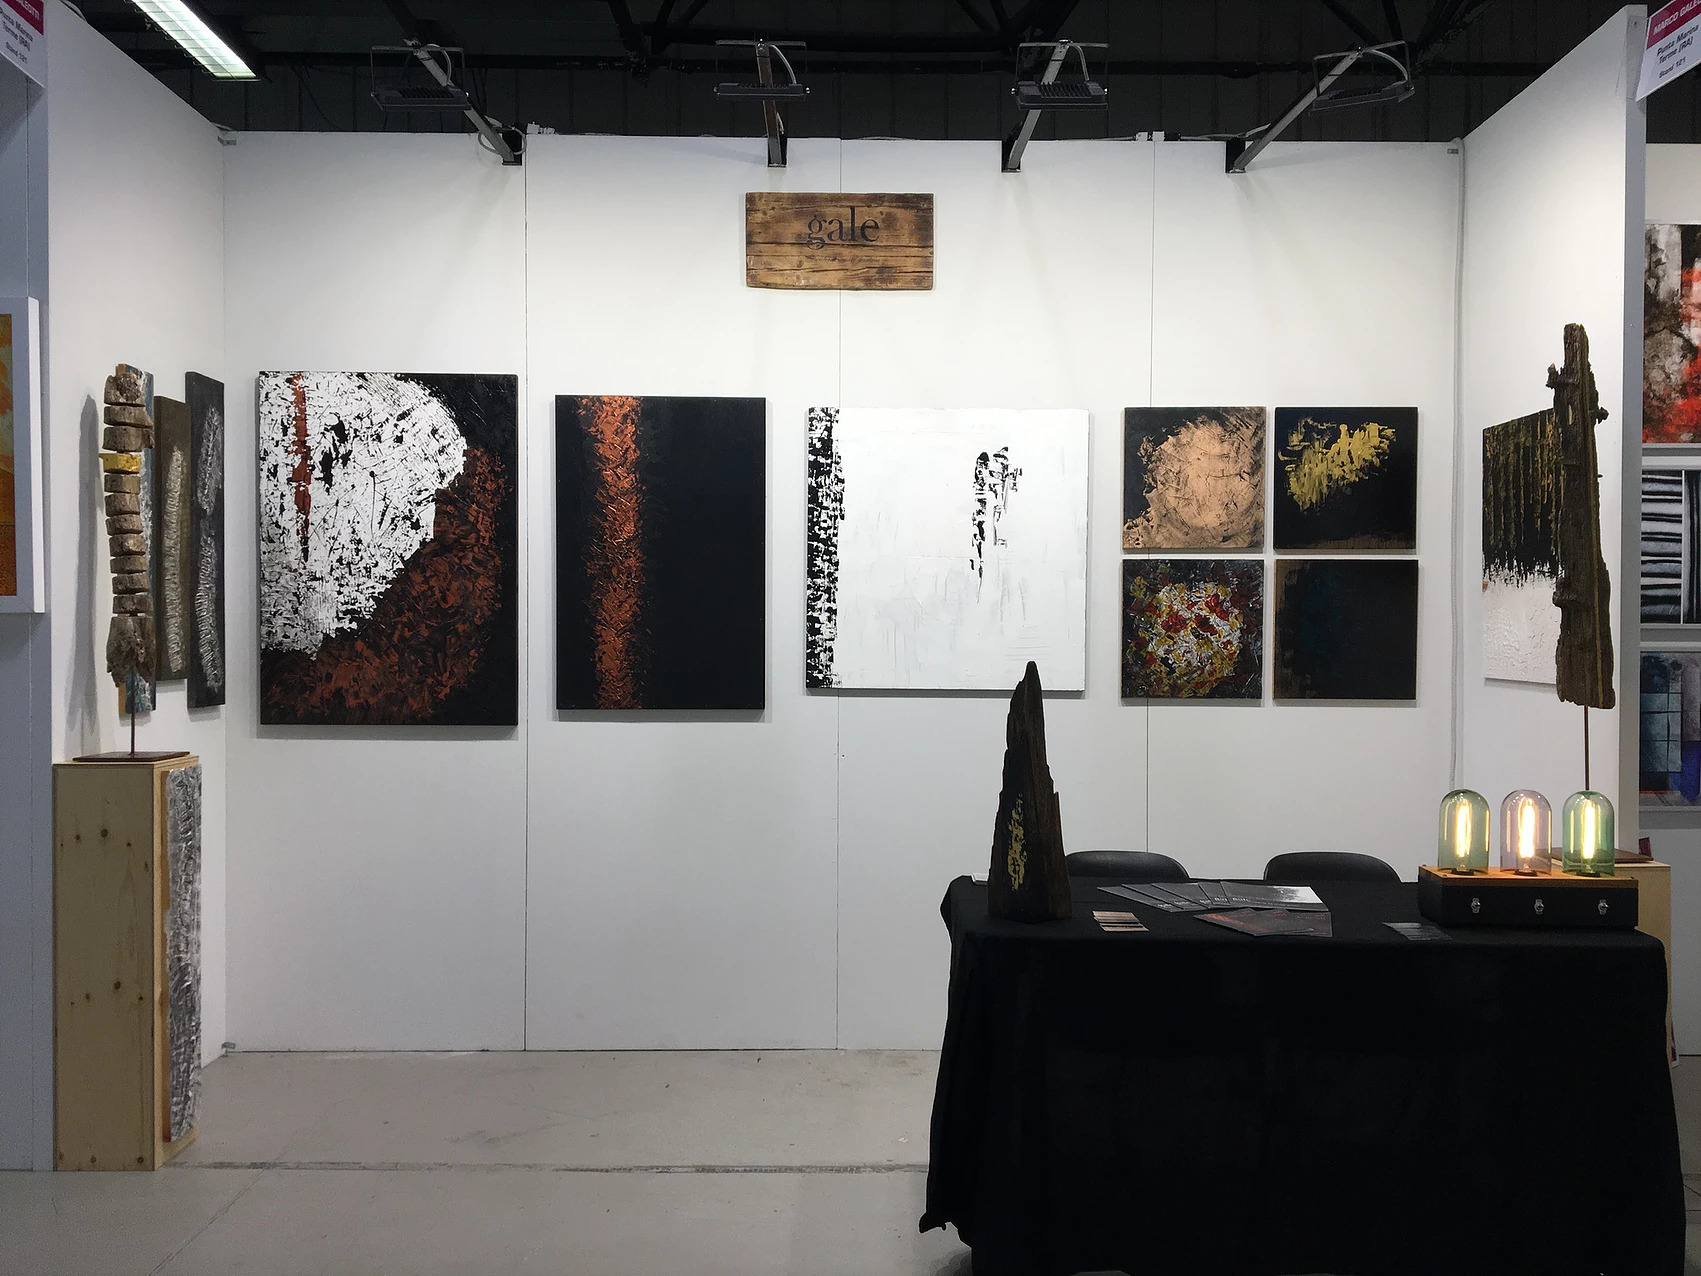 gale's stand at Vernice Art Fair